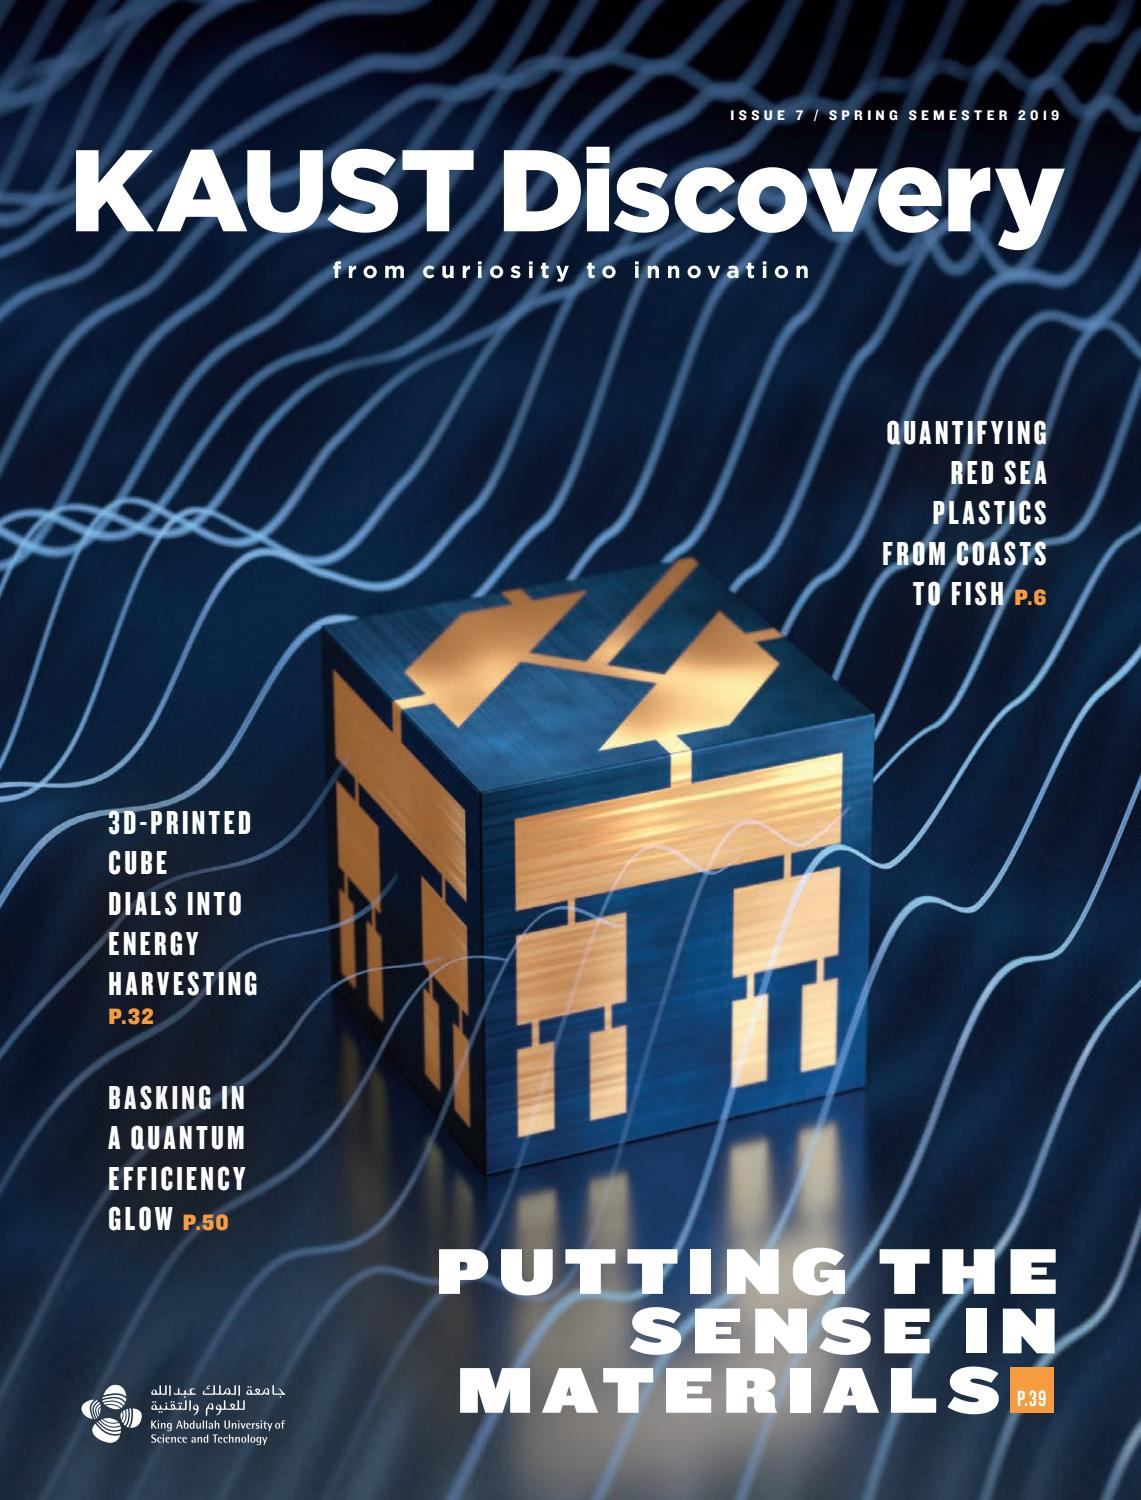 KAUST Discovery - Issue 7 by KAUST - issuu